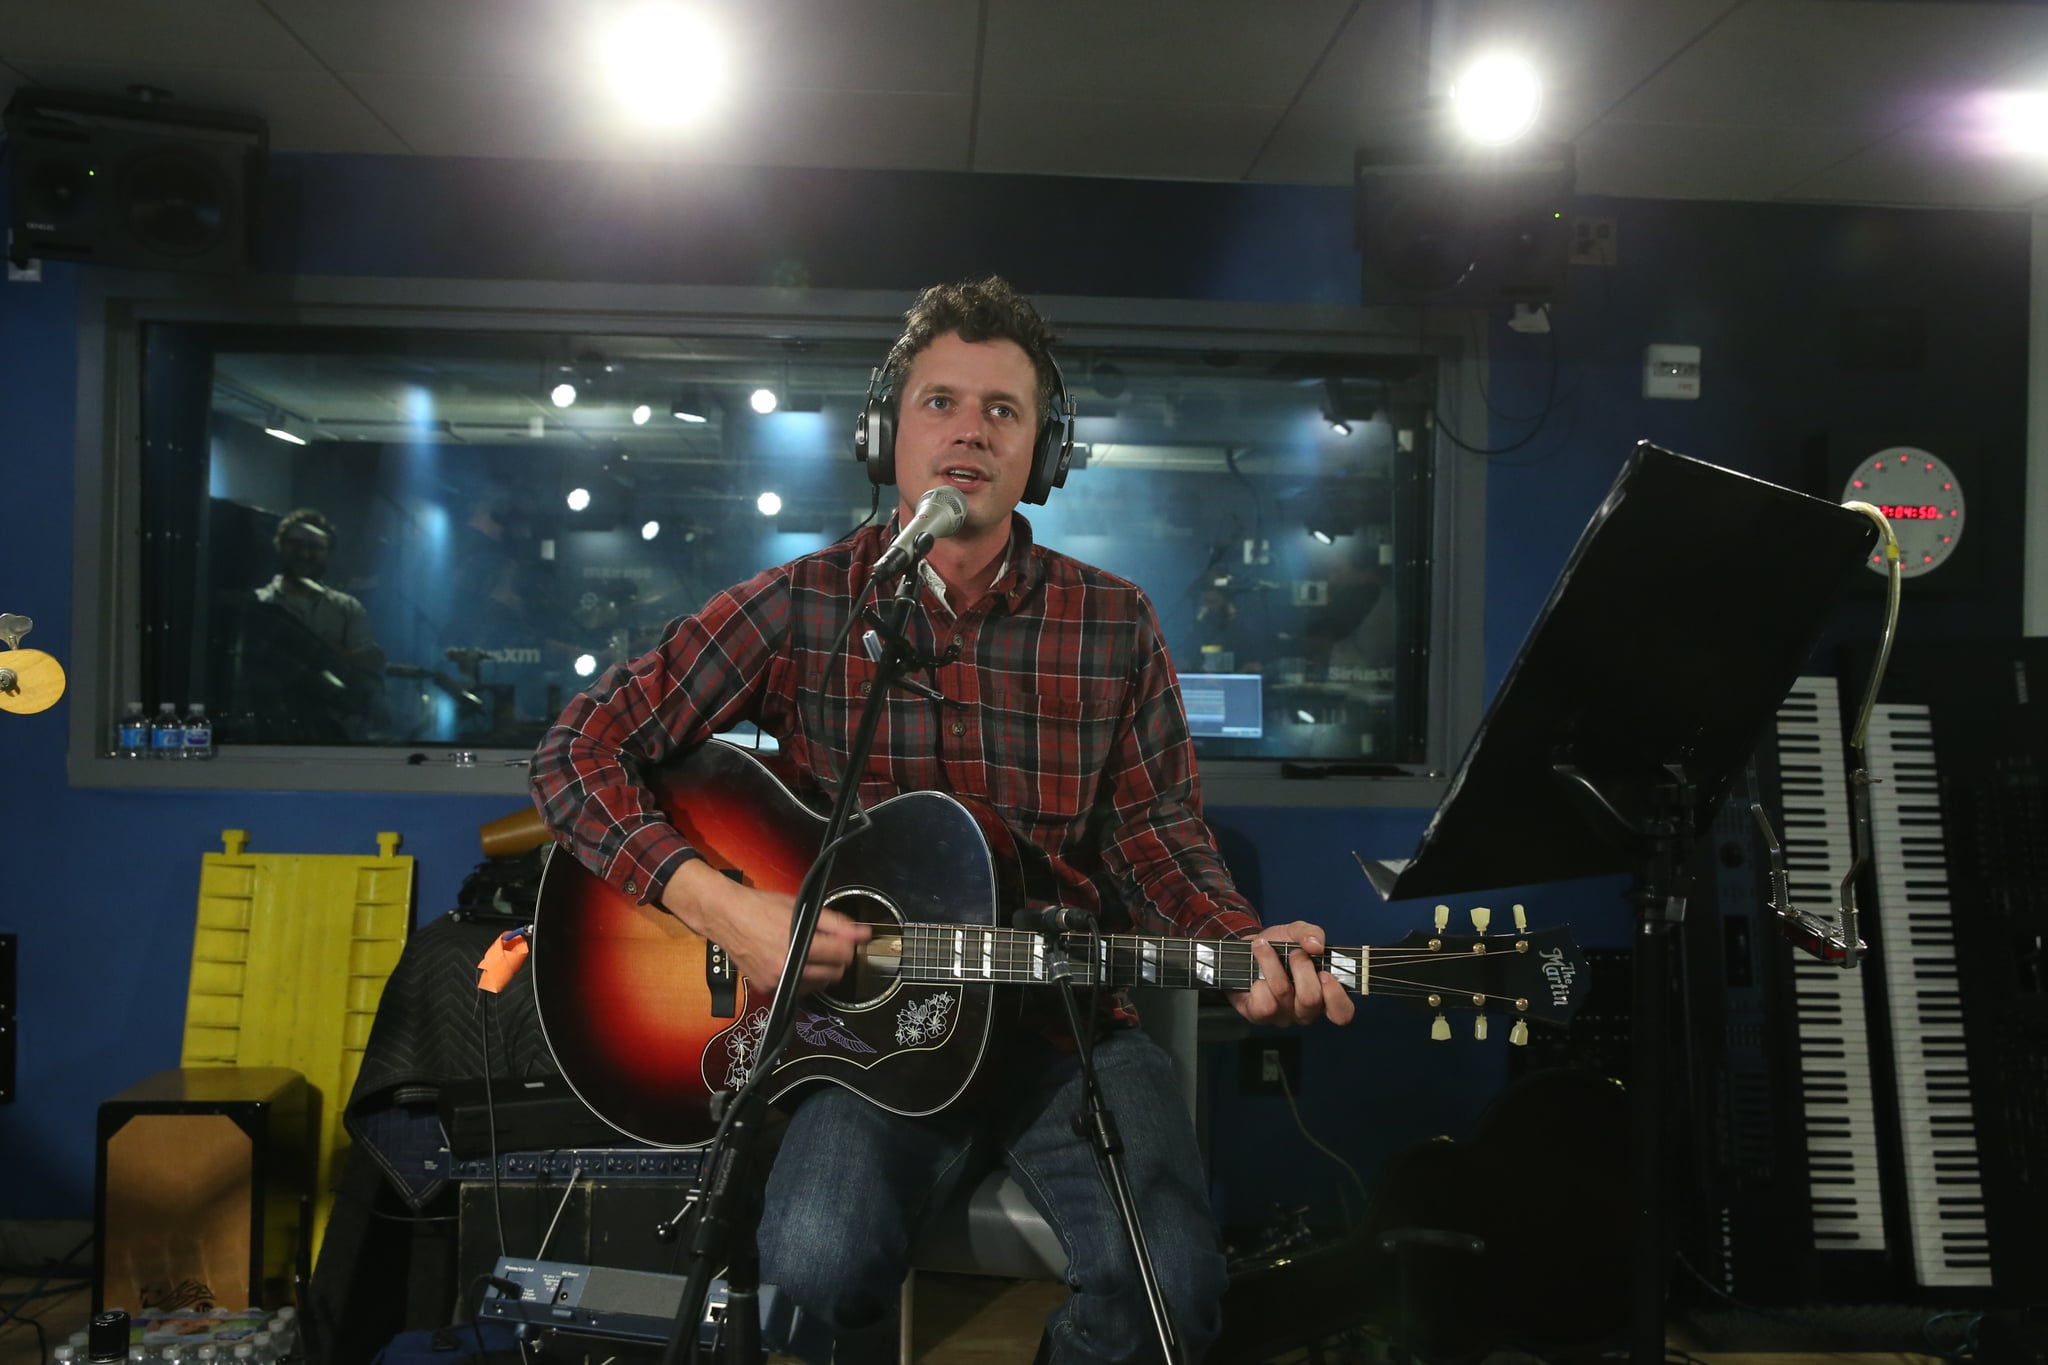 NEW YORK, NY - OCTOBER 26:  Evan Felker of Turnpike Troubadours performs at SiriusXM Studios on October 26, 2017 in New York City.  (Photo by Rob Kim/Getty Images)